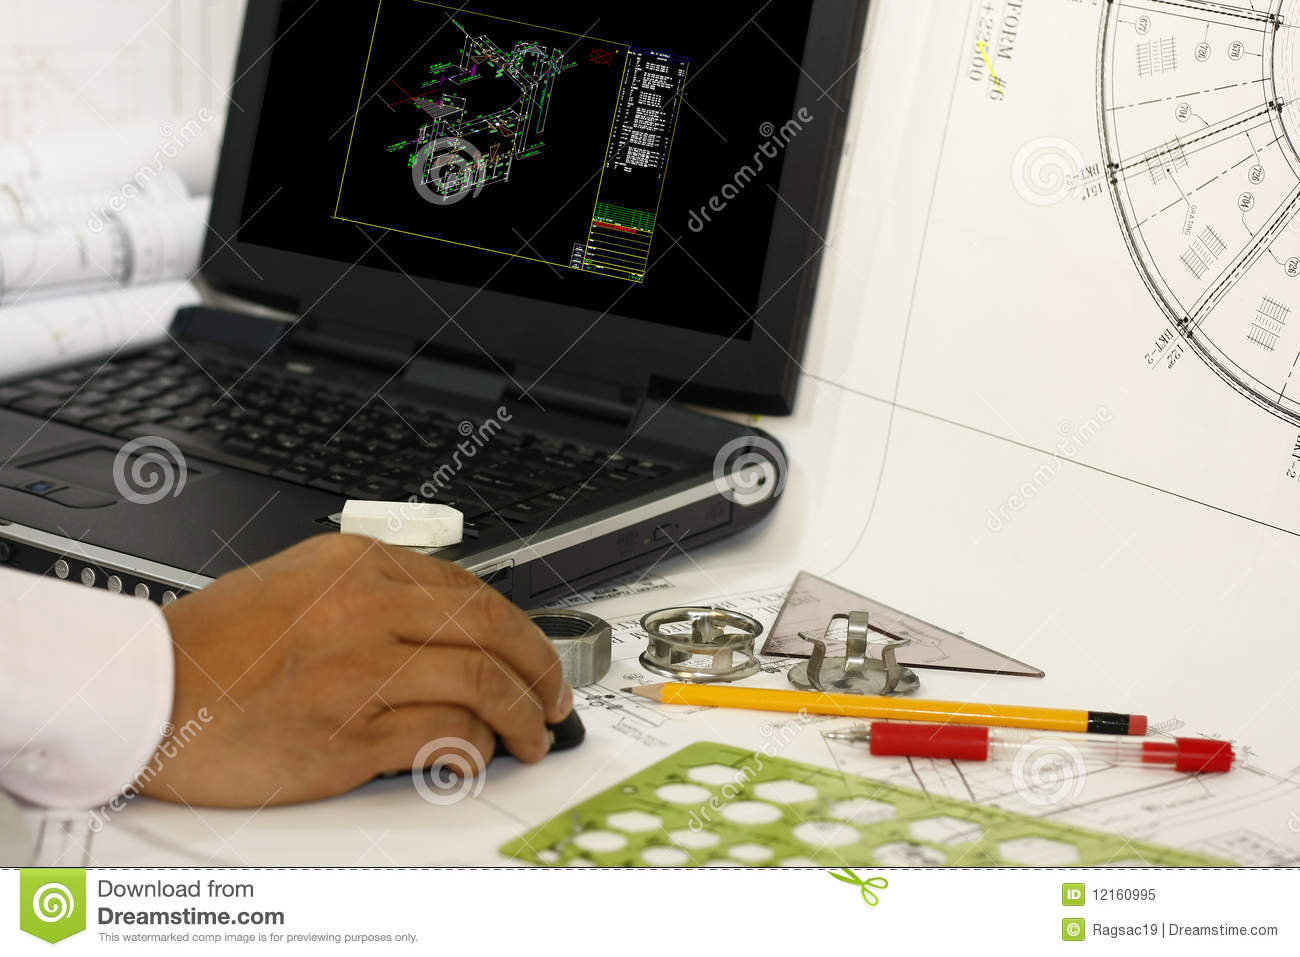 Drafting Of Piping Instrument And Diagram Stock Image Instrumentation Images